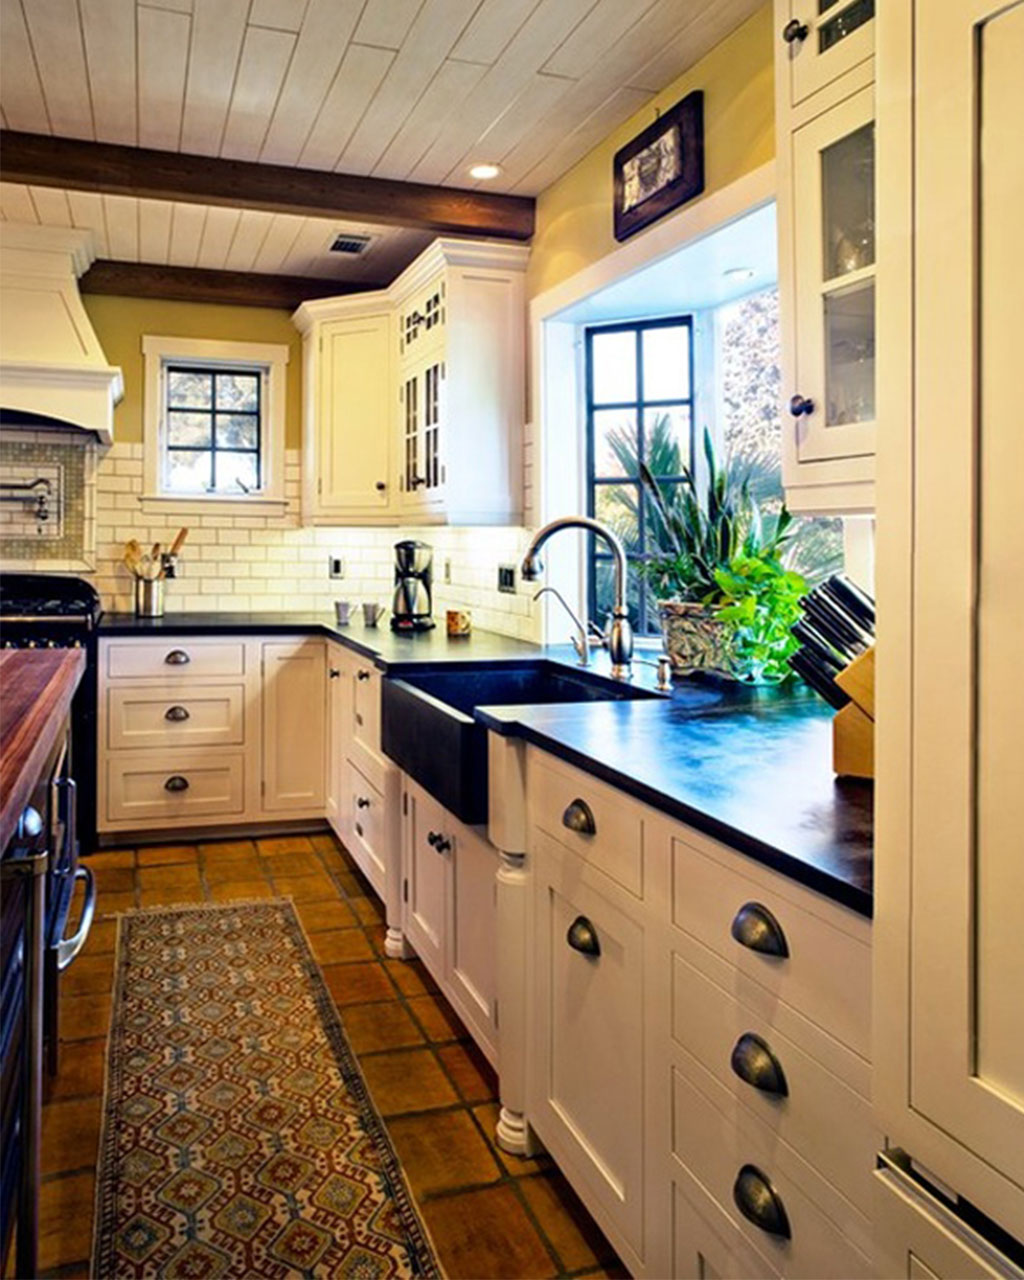 Kitchen Colors Color Schemes And Designs: 25 Cool Kitchen Design Trends 2015